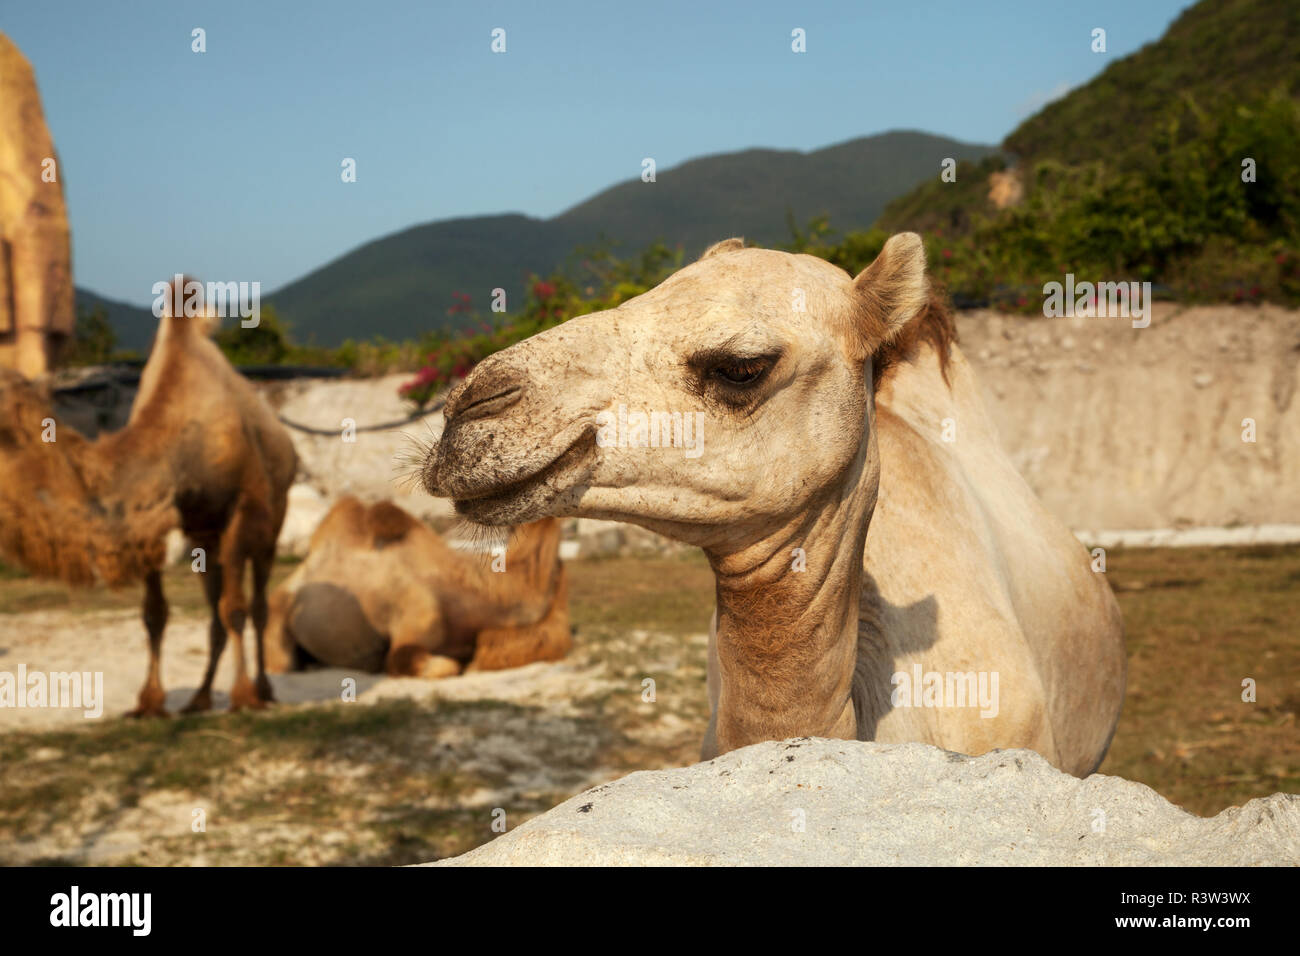 Dromedary camel head close-up portrait. Group of Bactrian and Dromedary camels species in the nature - Stock Image